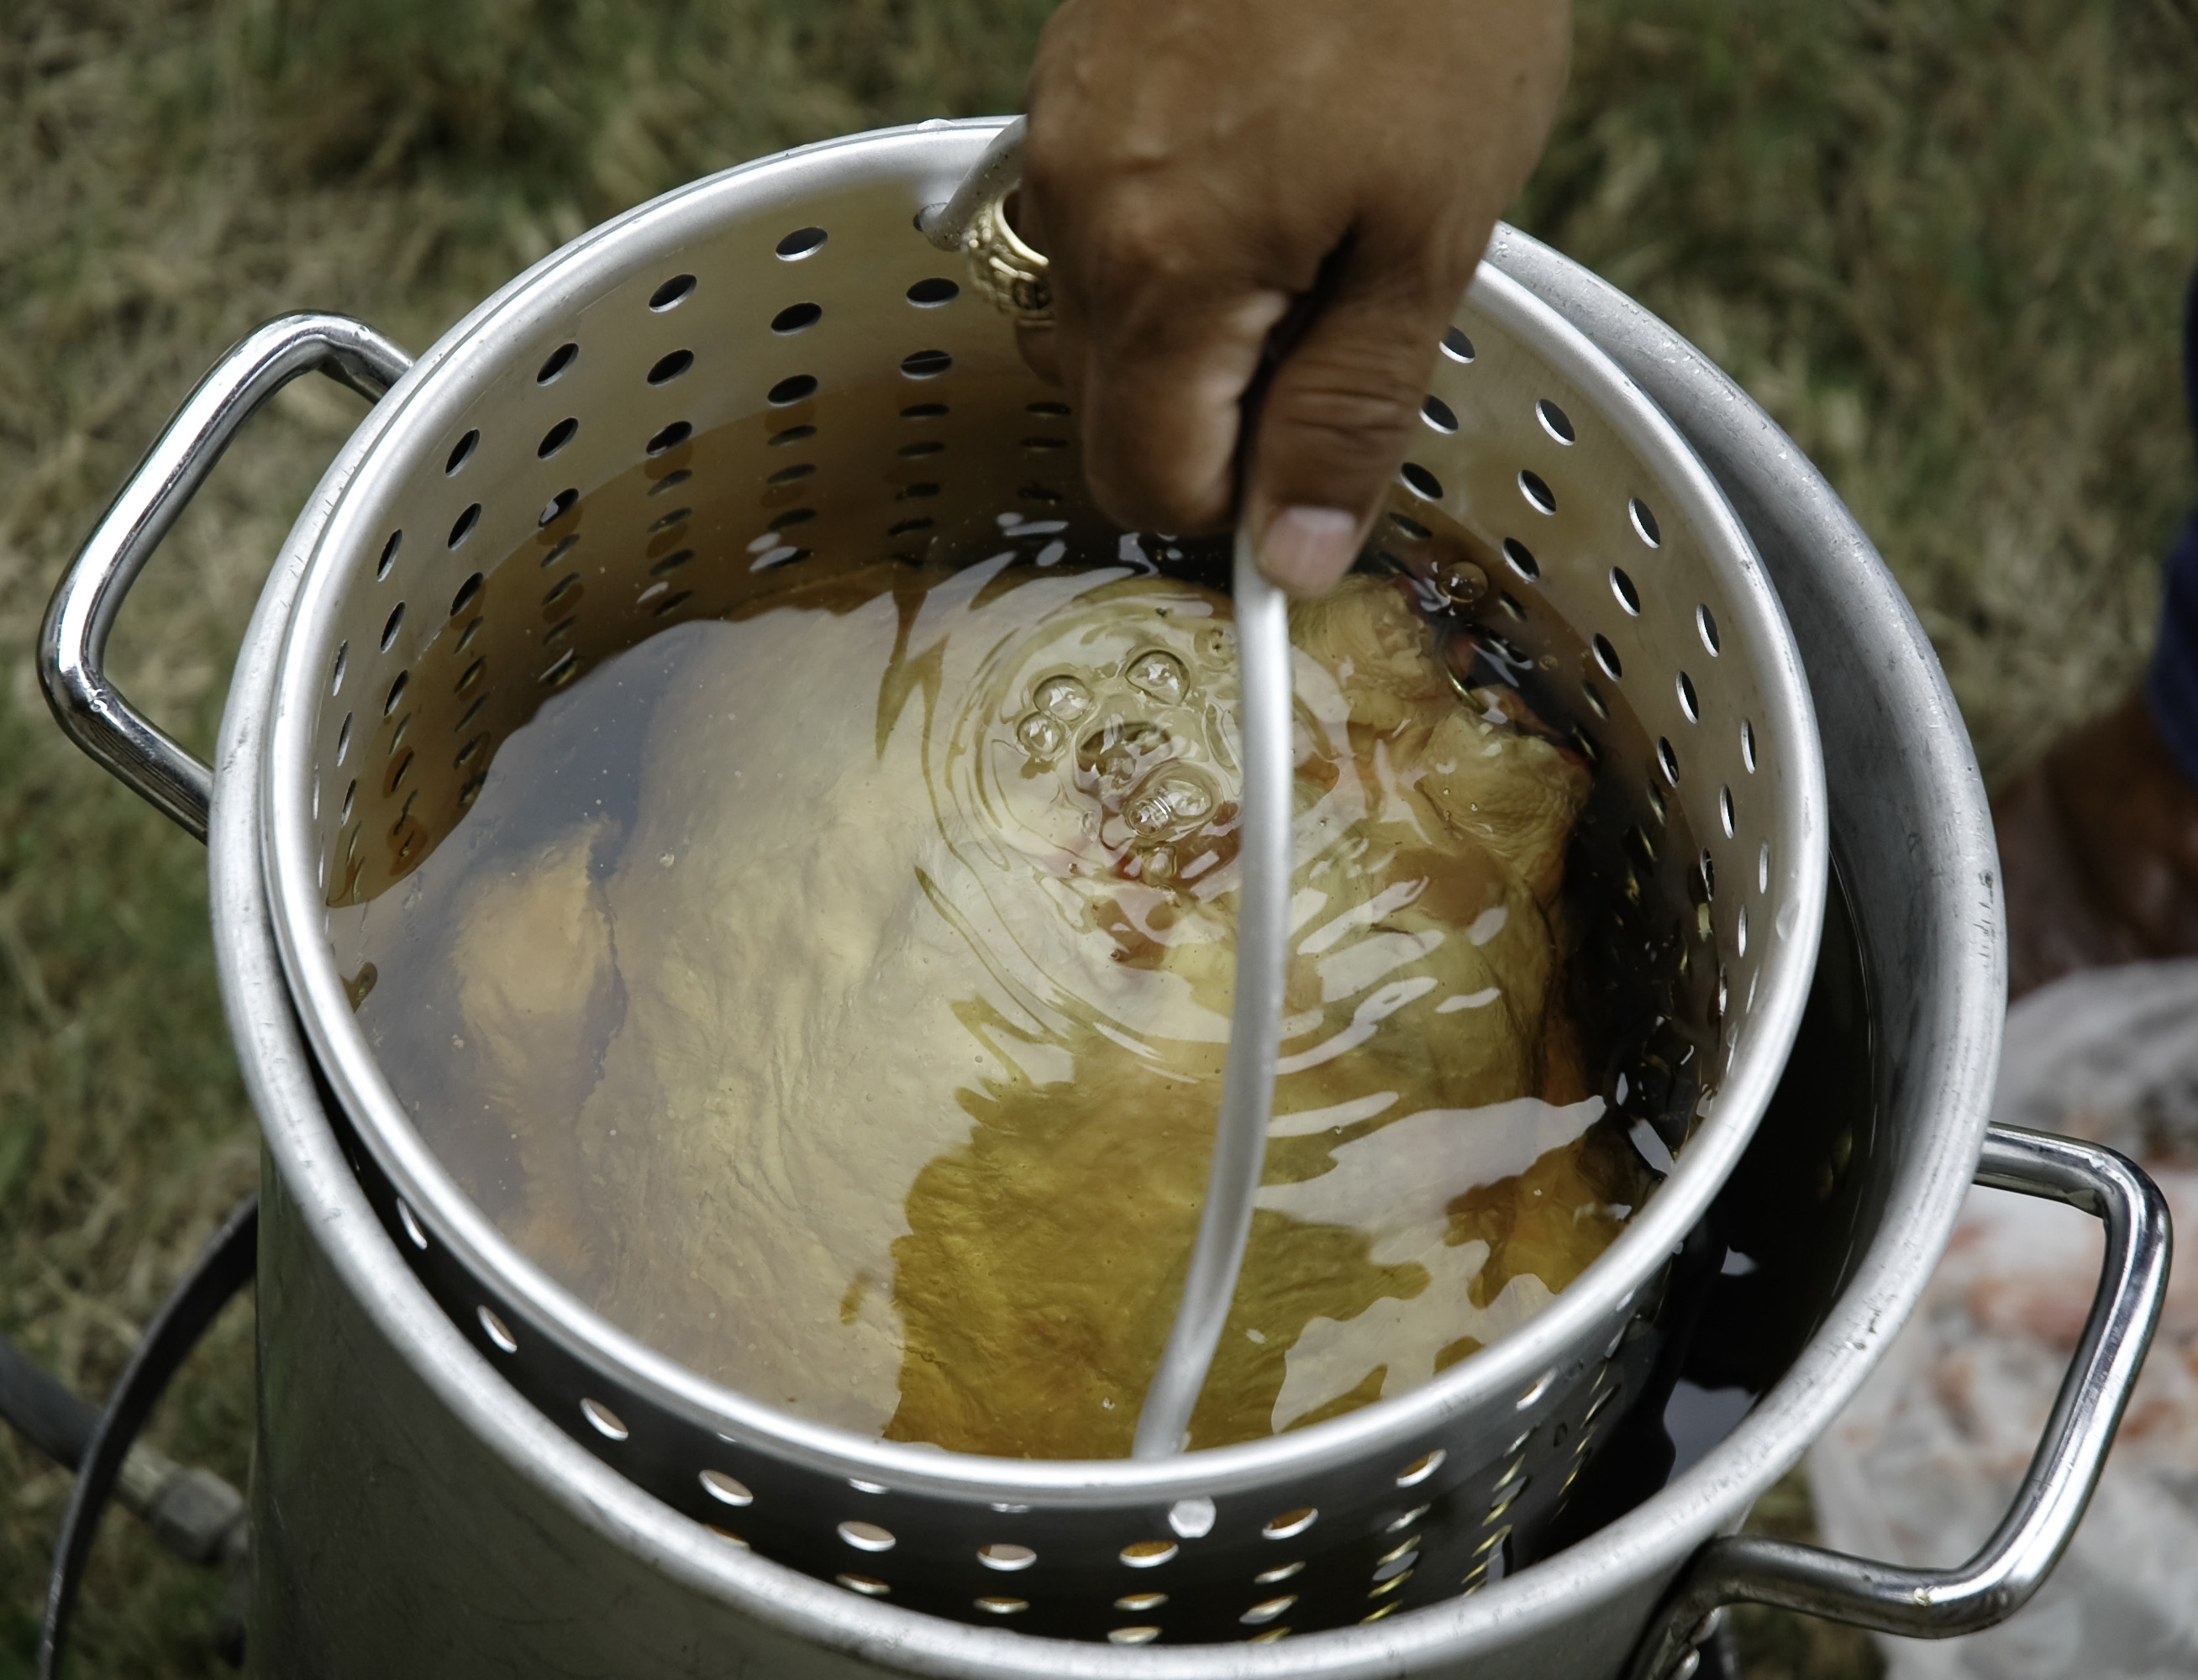 Man's-hand-dunking-turkey-in-deep-fryer-outside-crop-ThinkstockPhotos-144808200-Gustavo Perales